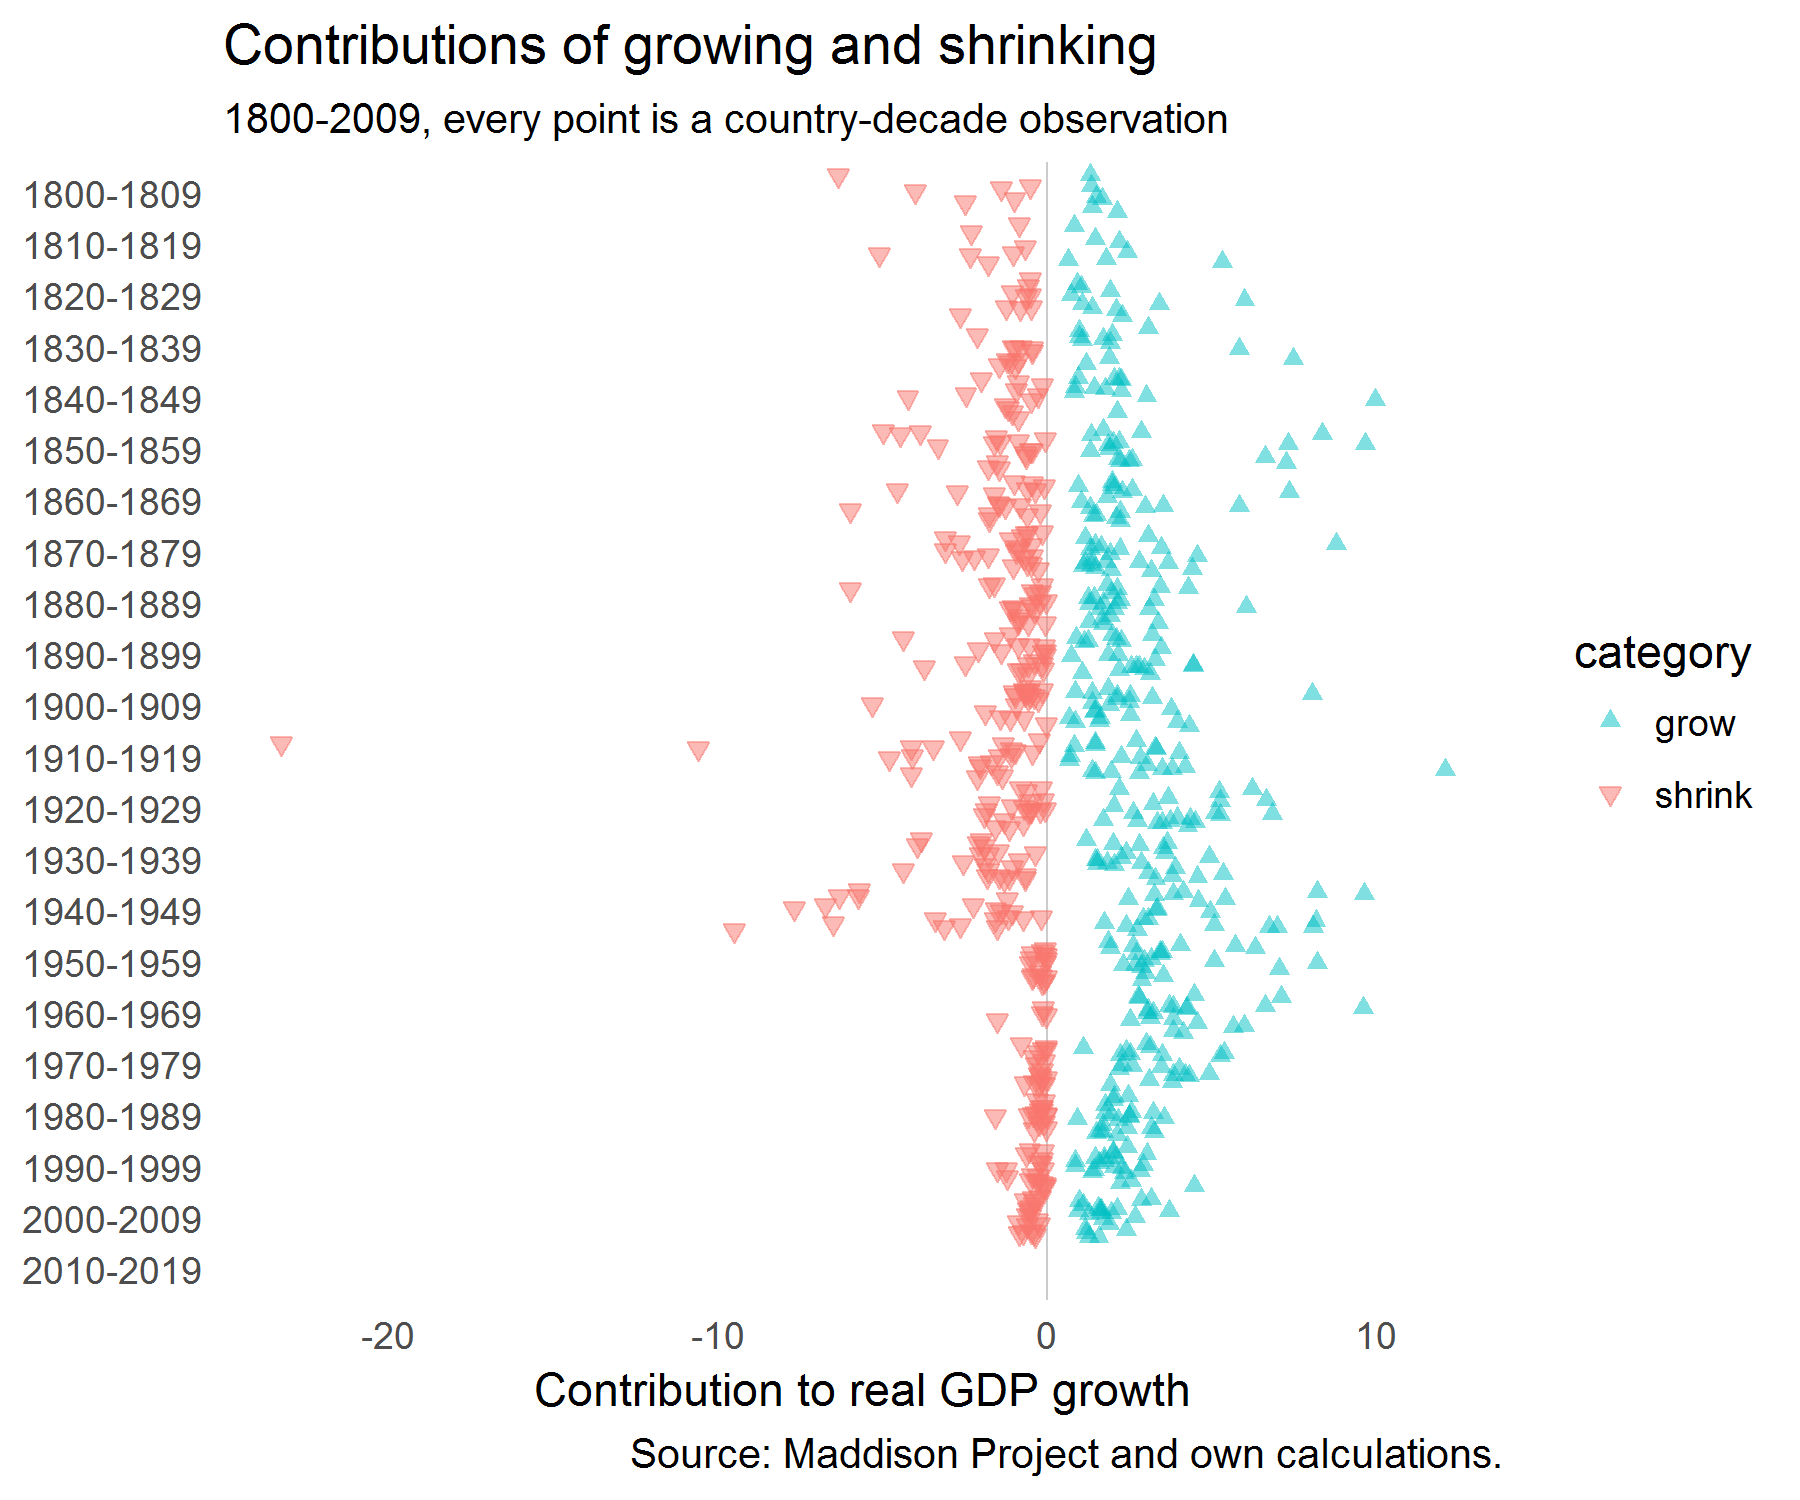 Contribution of growing and shrinking